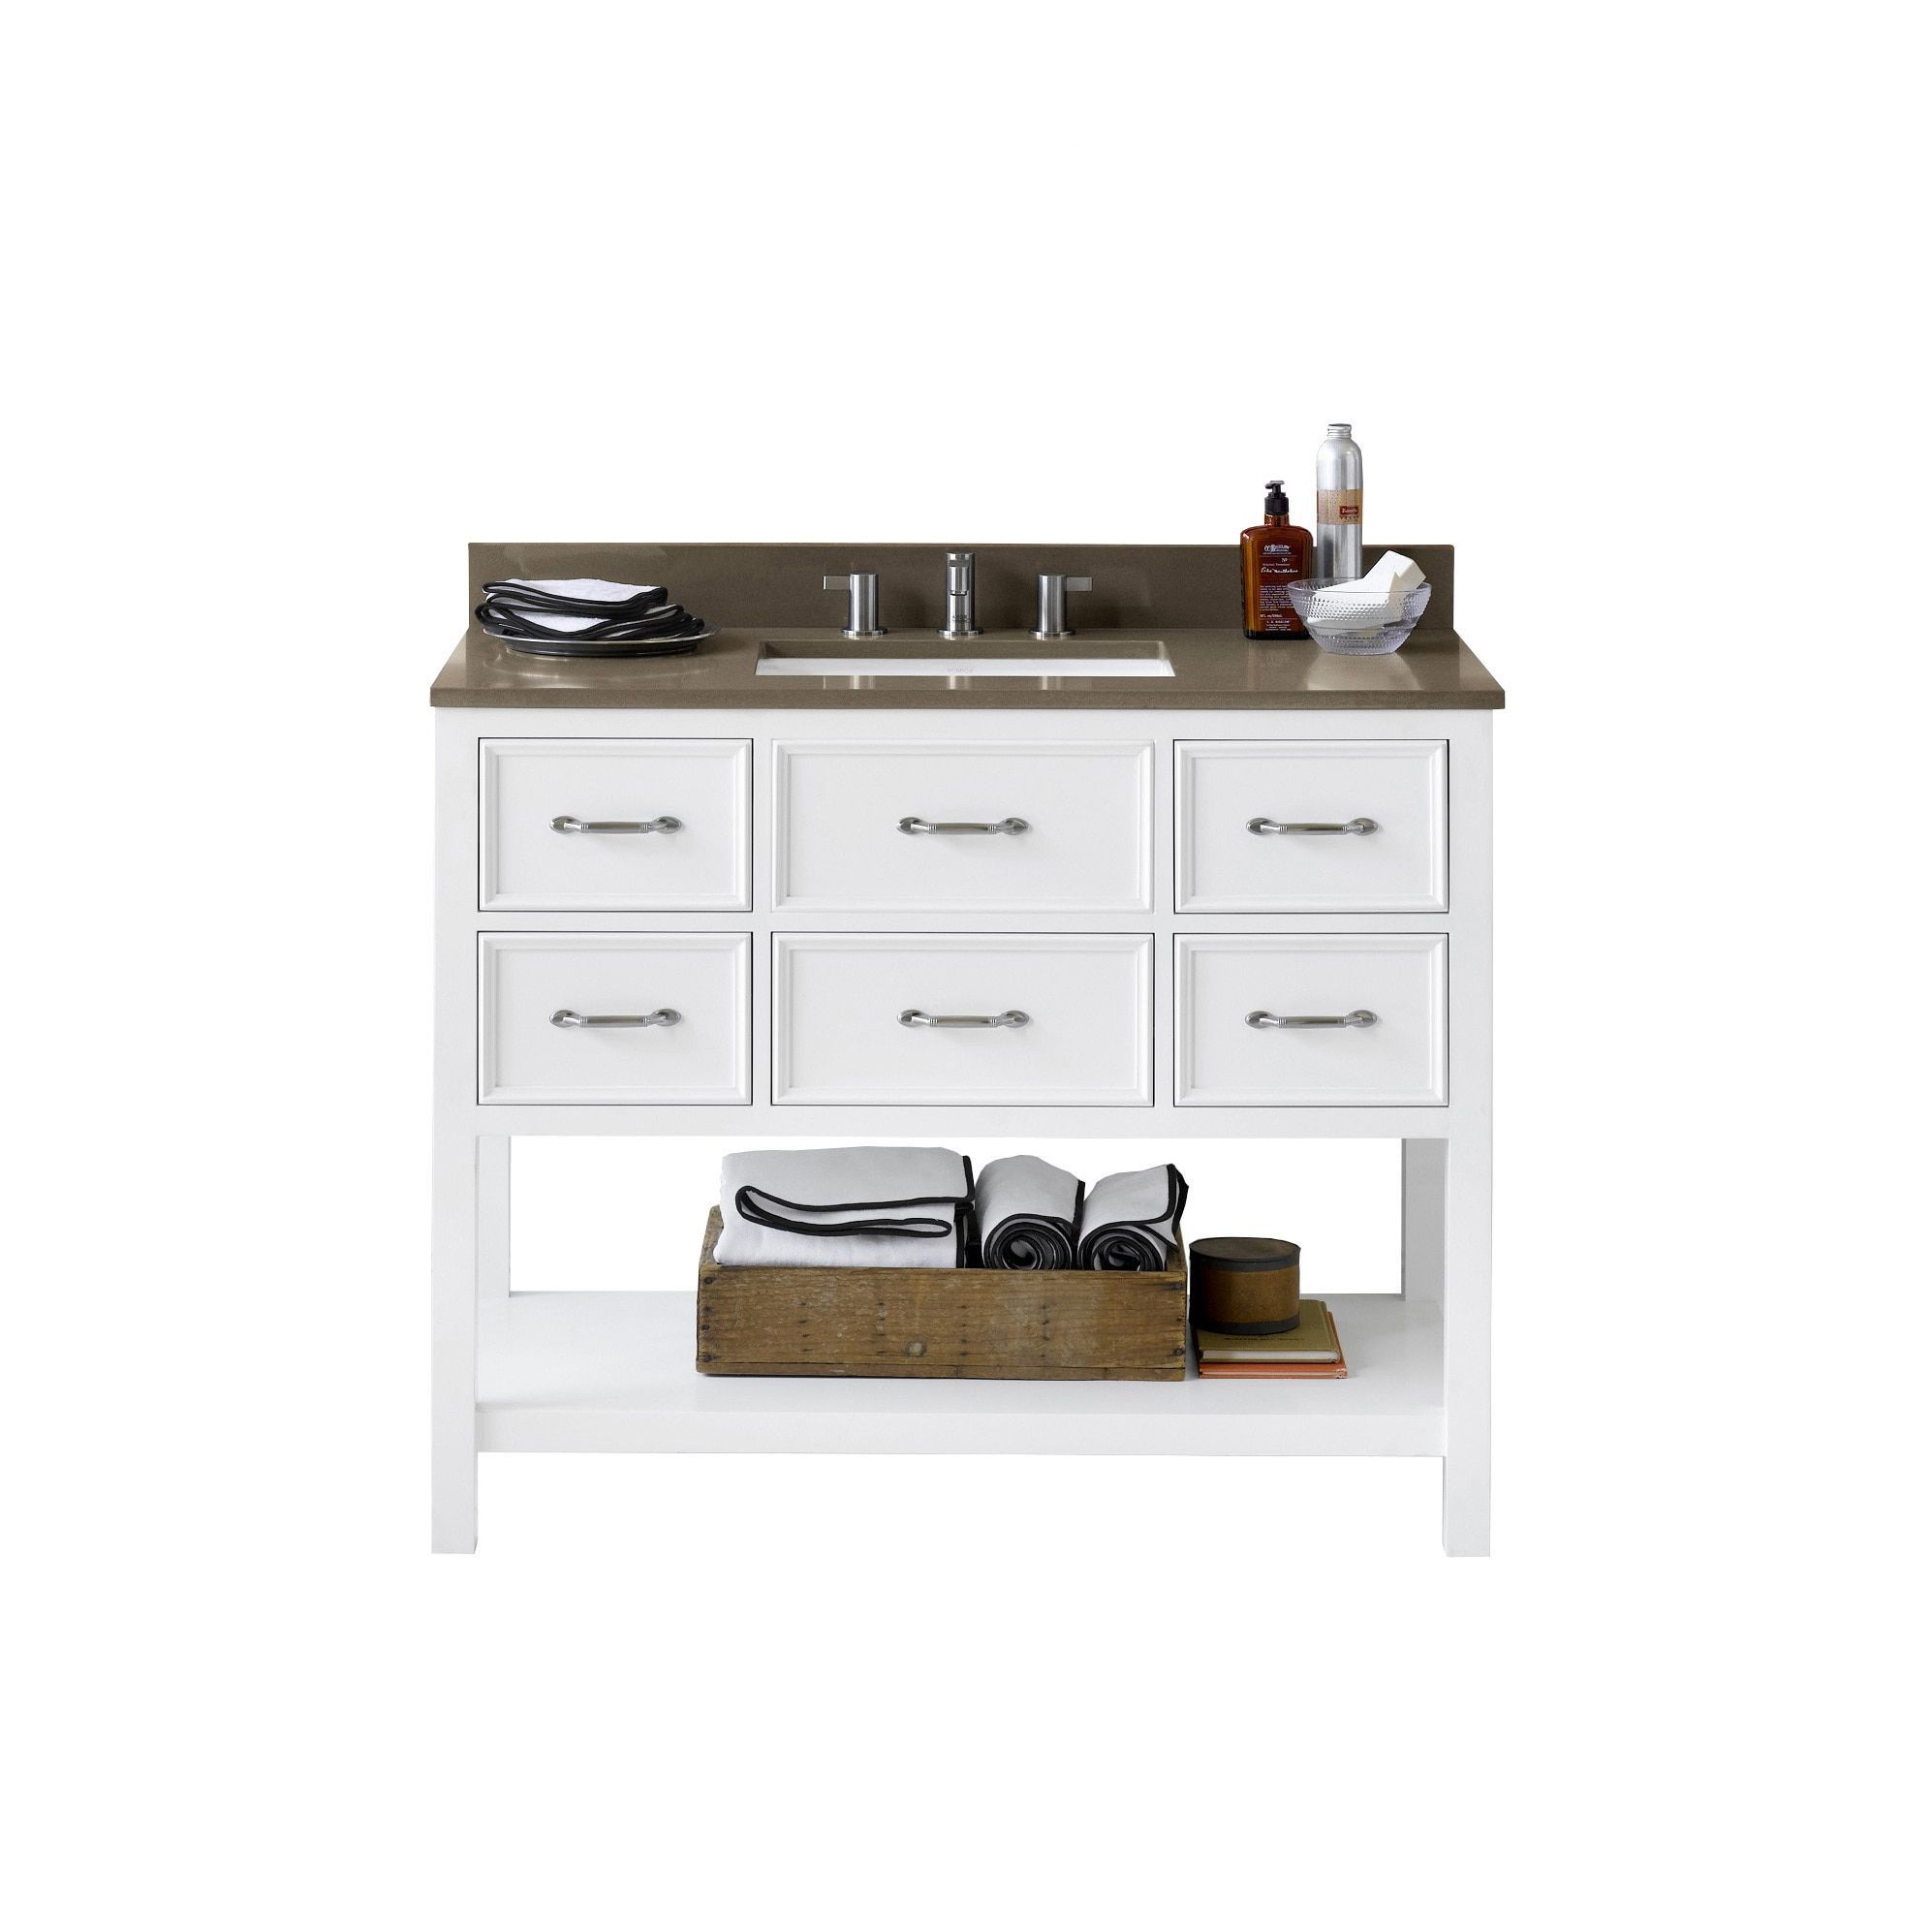 Ronbow newcastle white woodceramic inch bathroom vanity set with